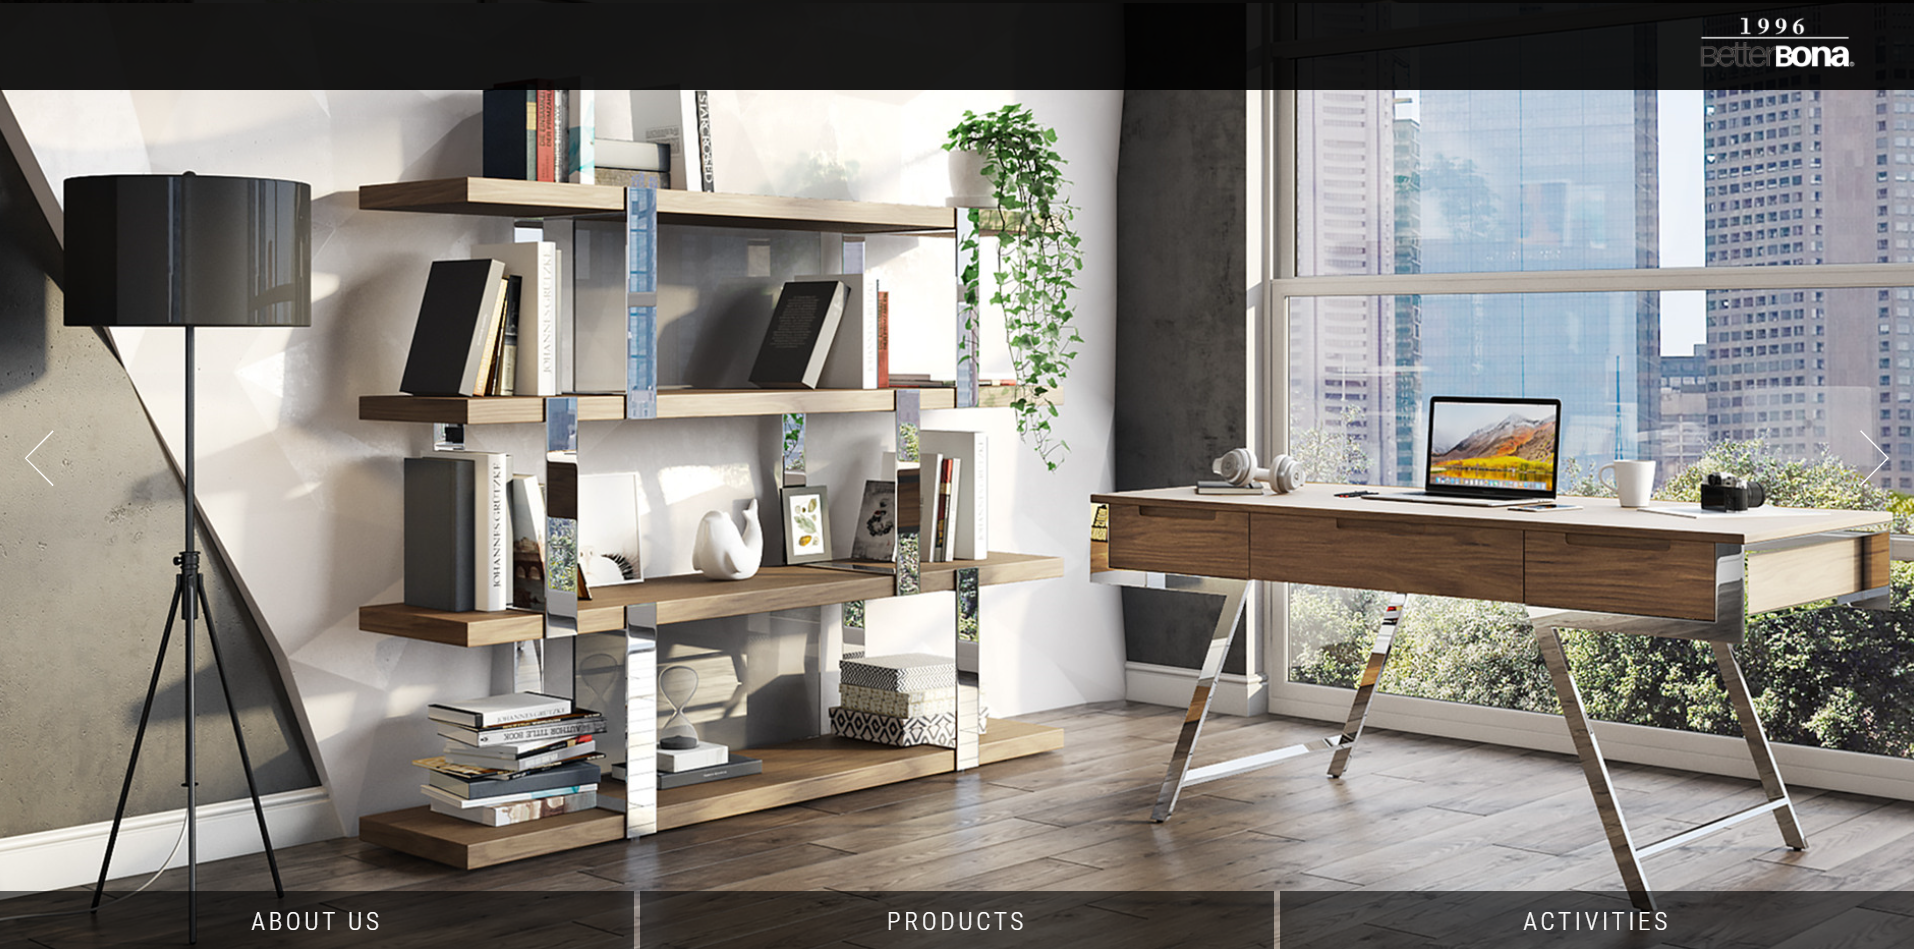 Photorealistic 3D Render for Ecommerce Website